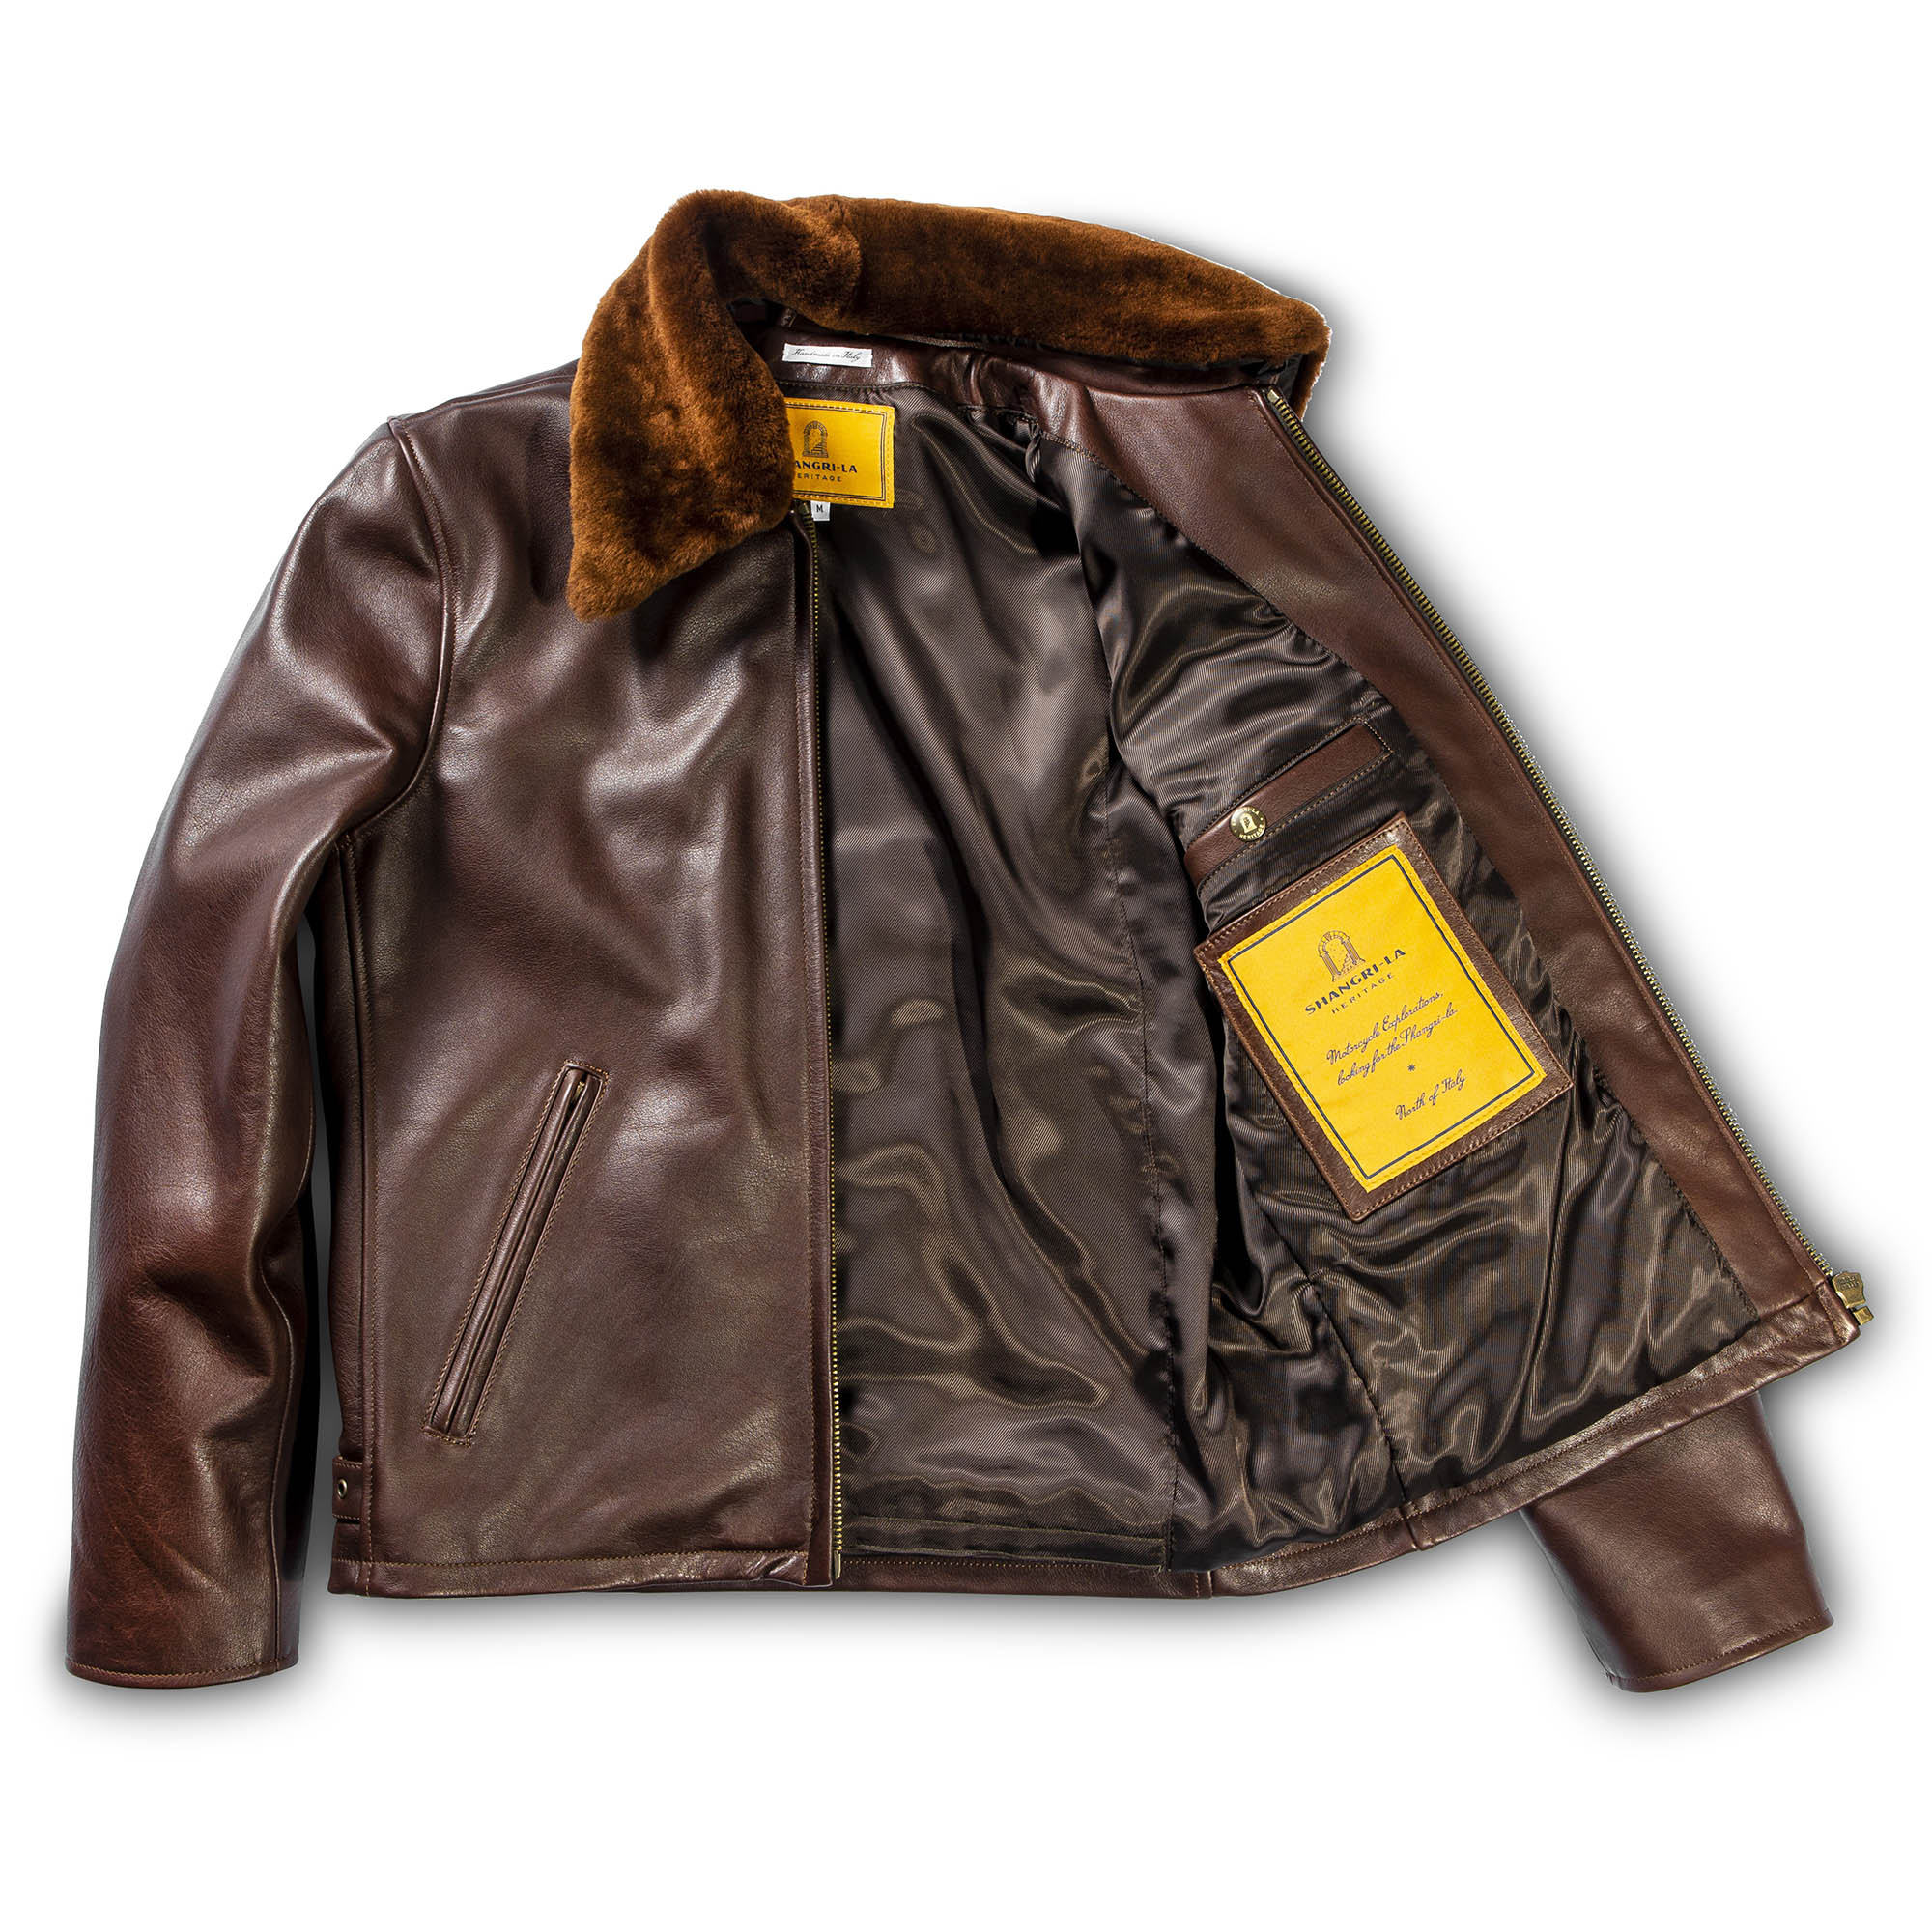 shangri-la-heritage-varenne-brown-steerhide-shearling-jacket-still-life-open